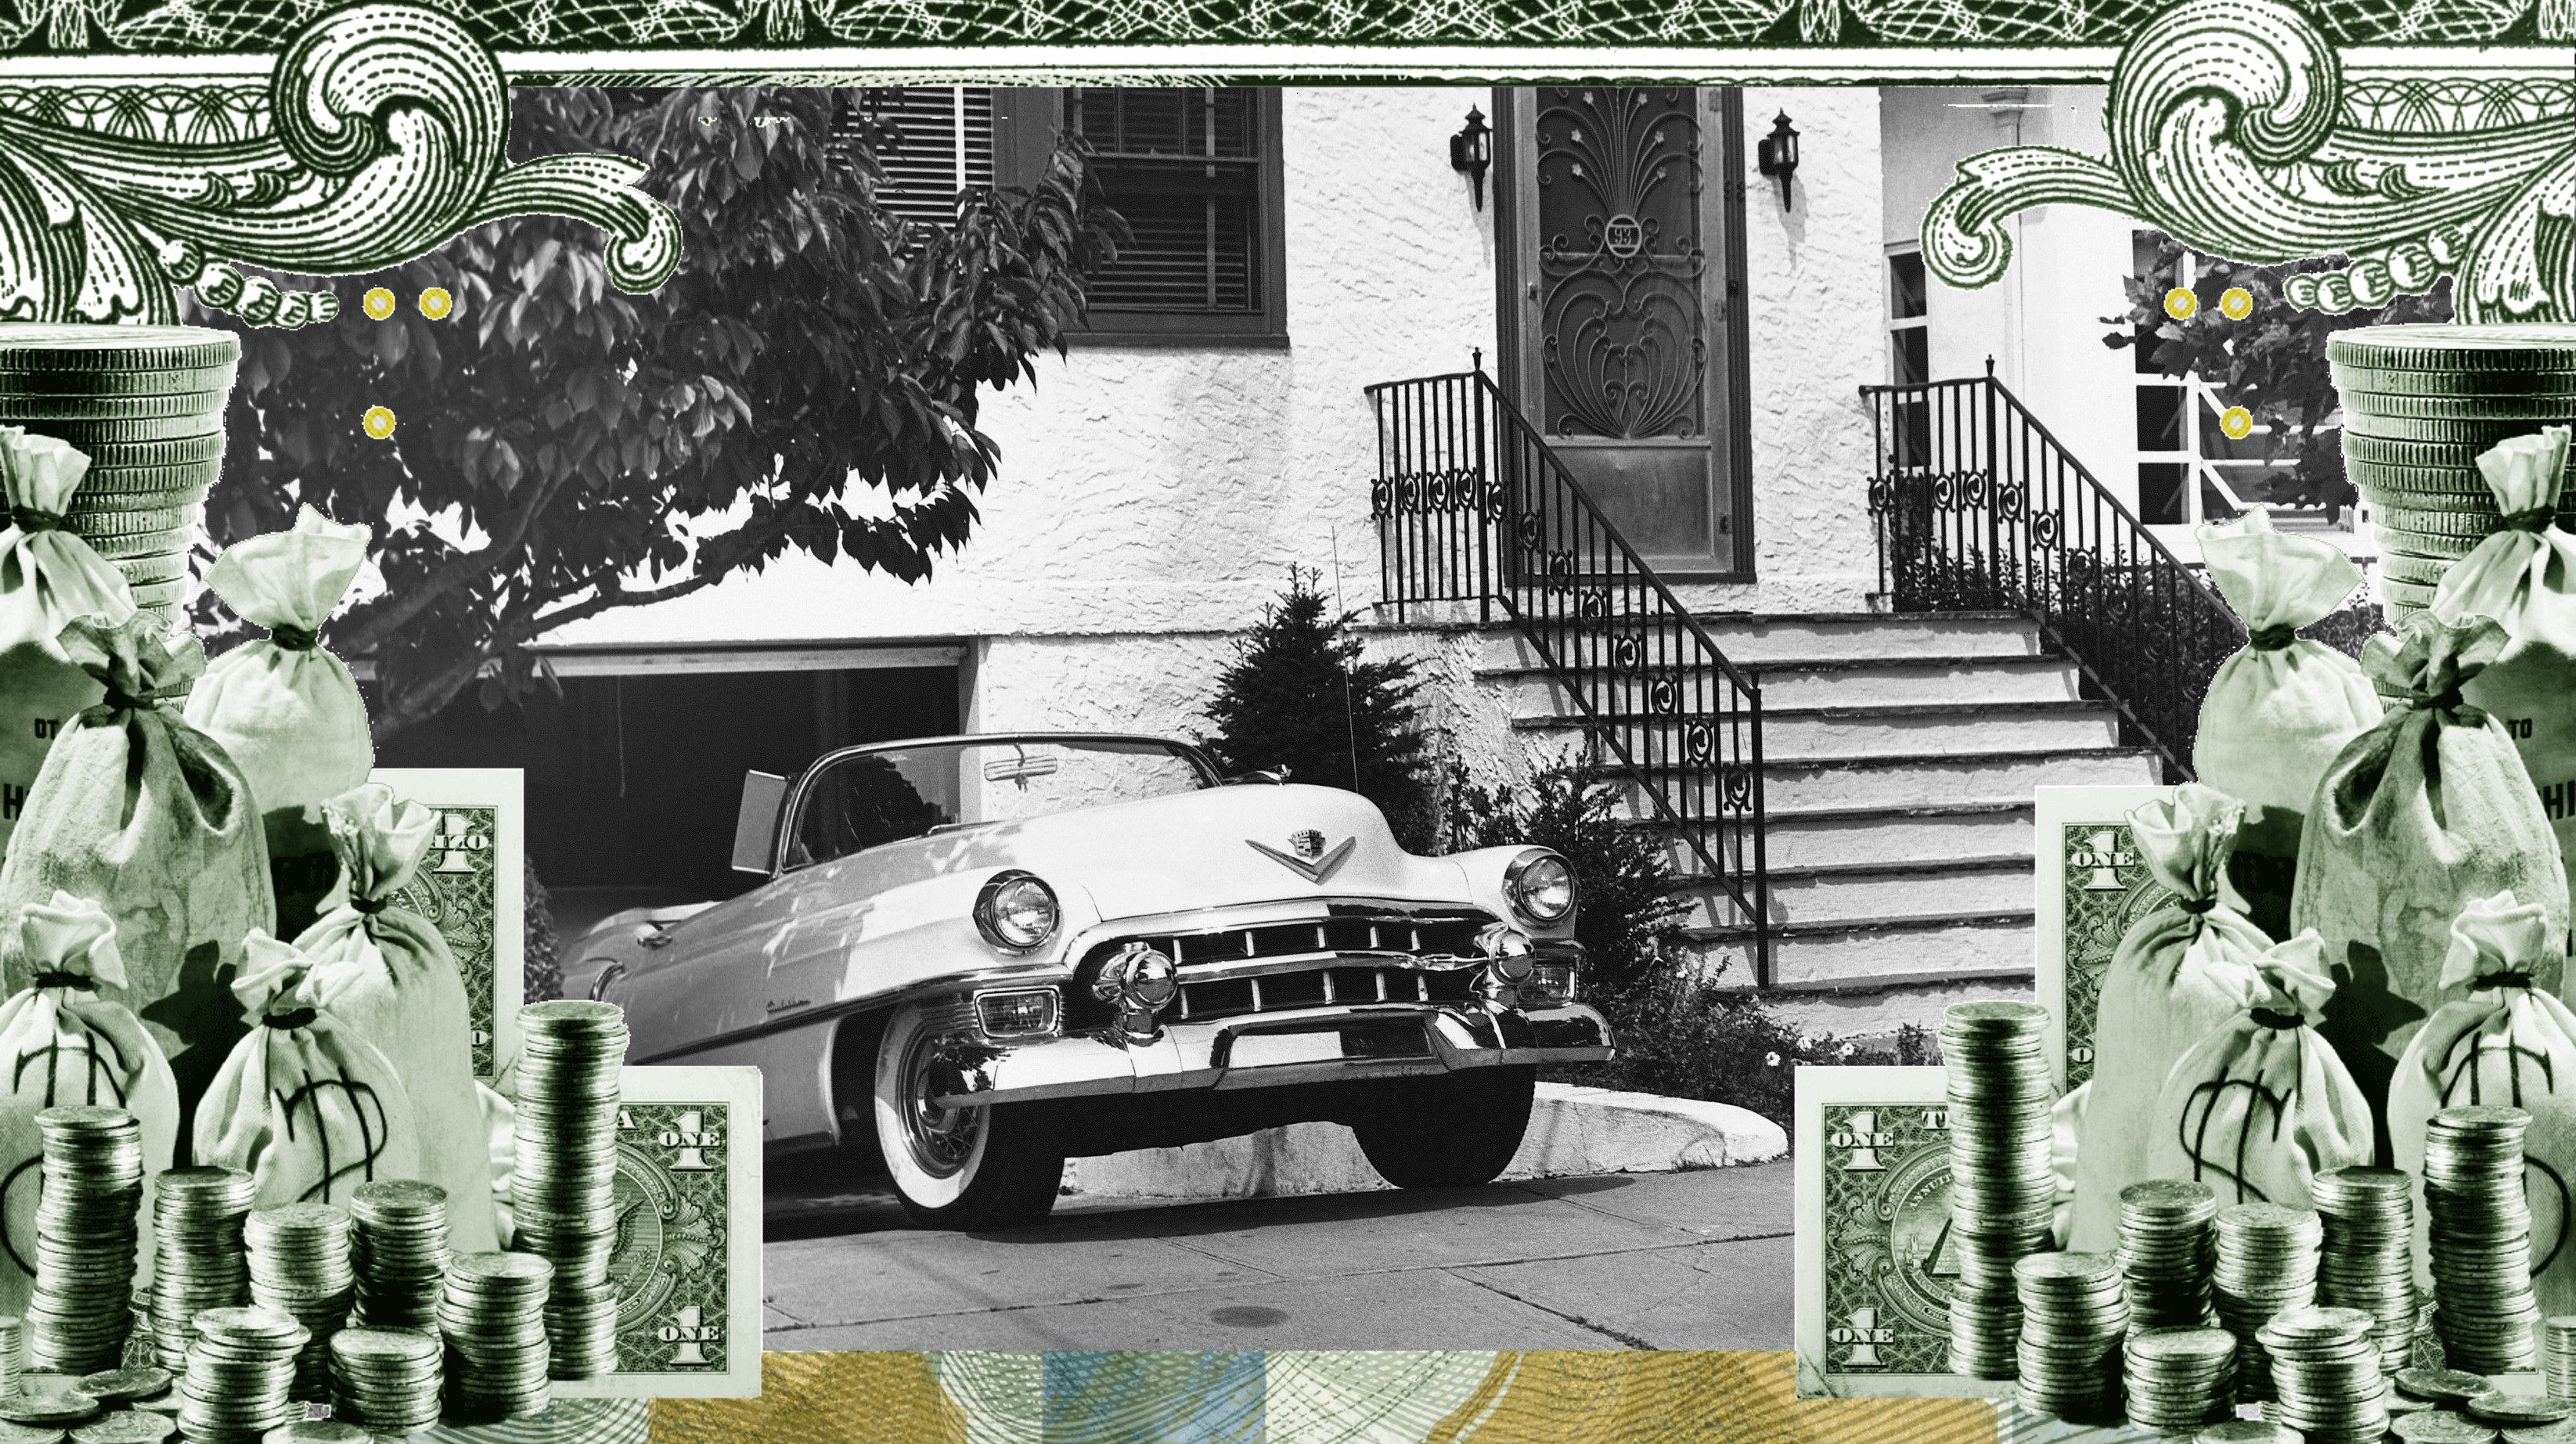 An illustration of dollar bill imagery surrounding an old photo of a car in a driveway.